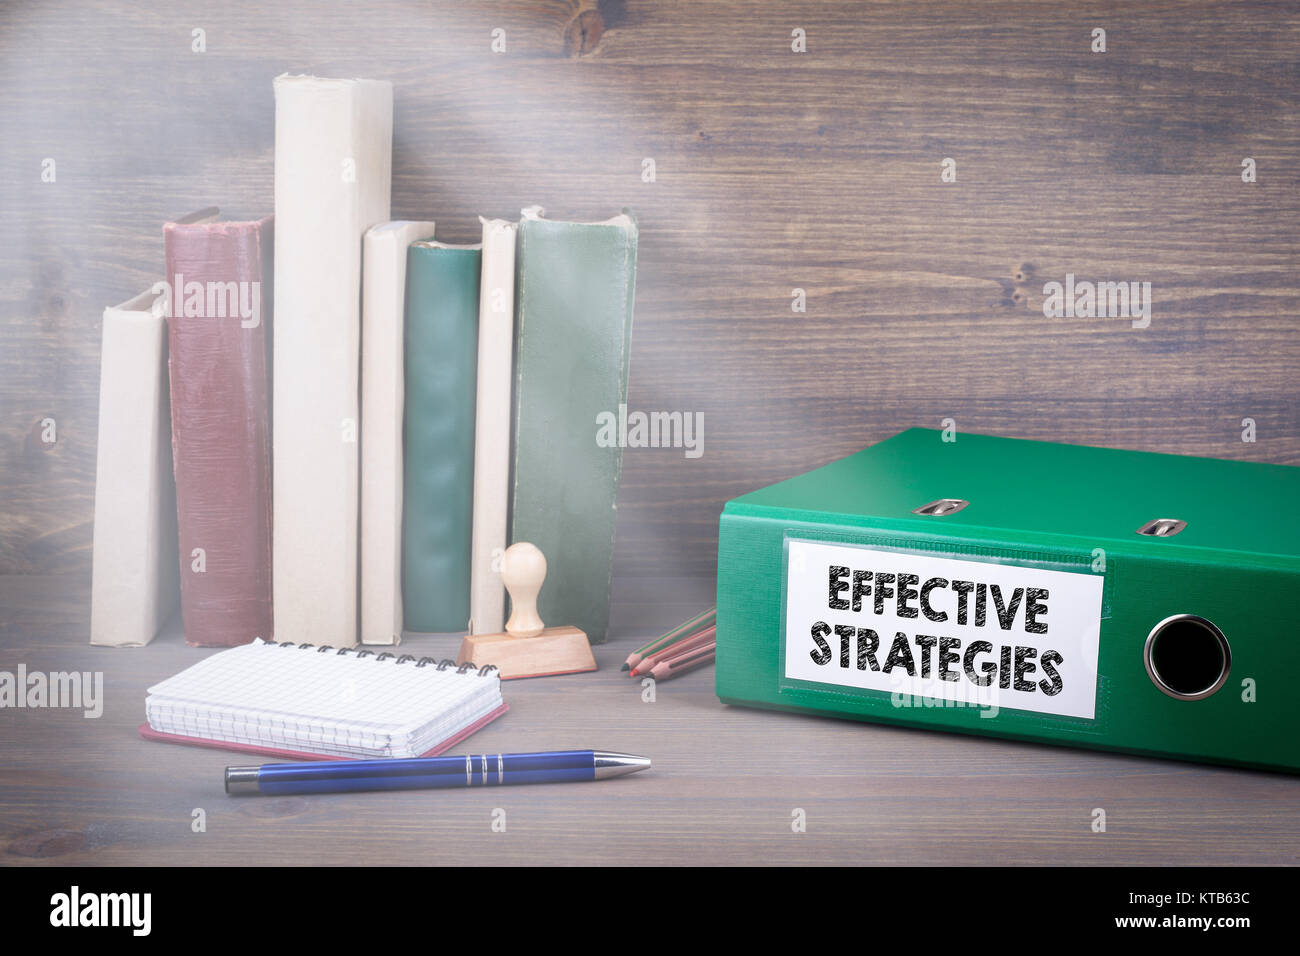 Effective Strategies. Binder on desk in the office. Business background. - Stock Image